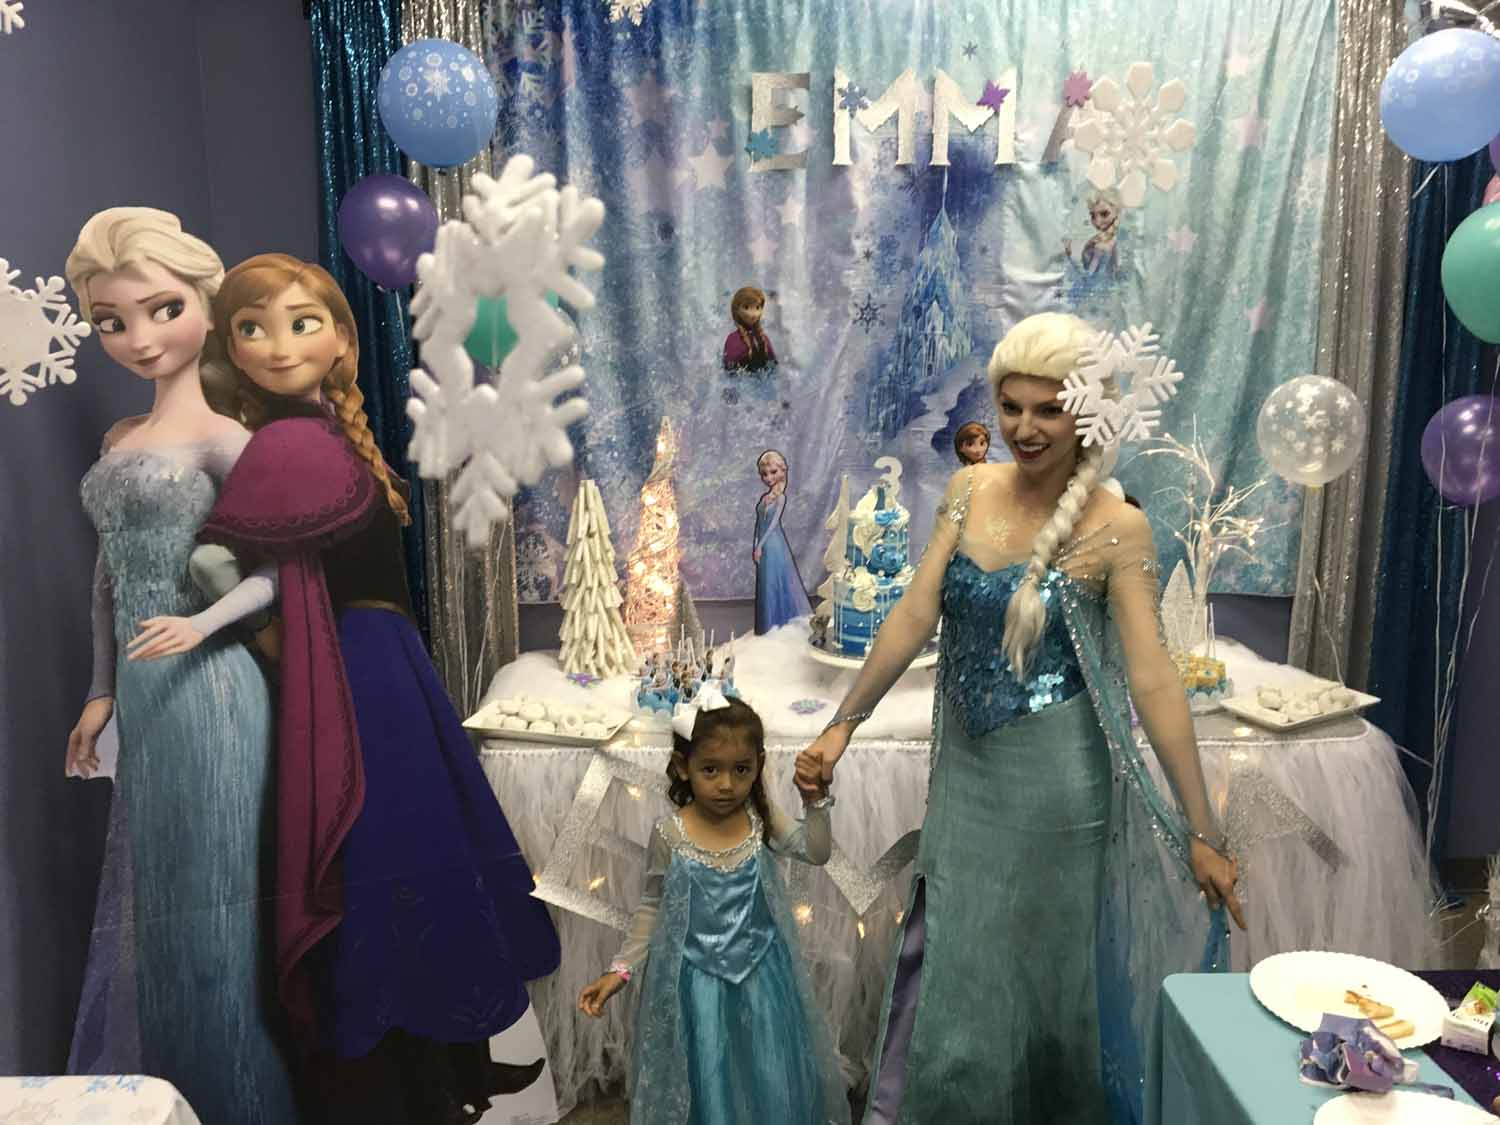 frozen themed birthday party in orlando florida - princesses and princes (10).jpg